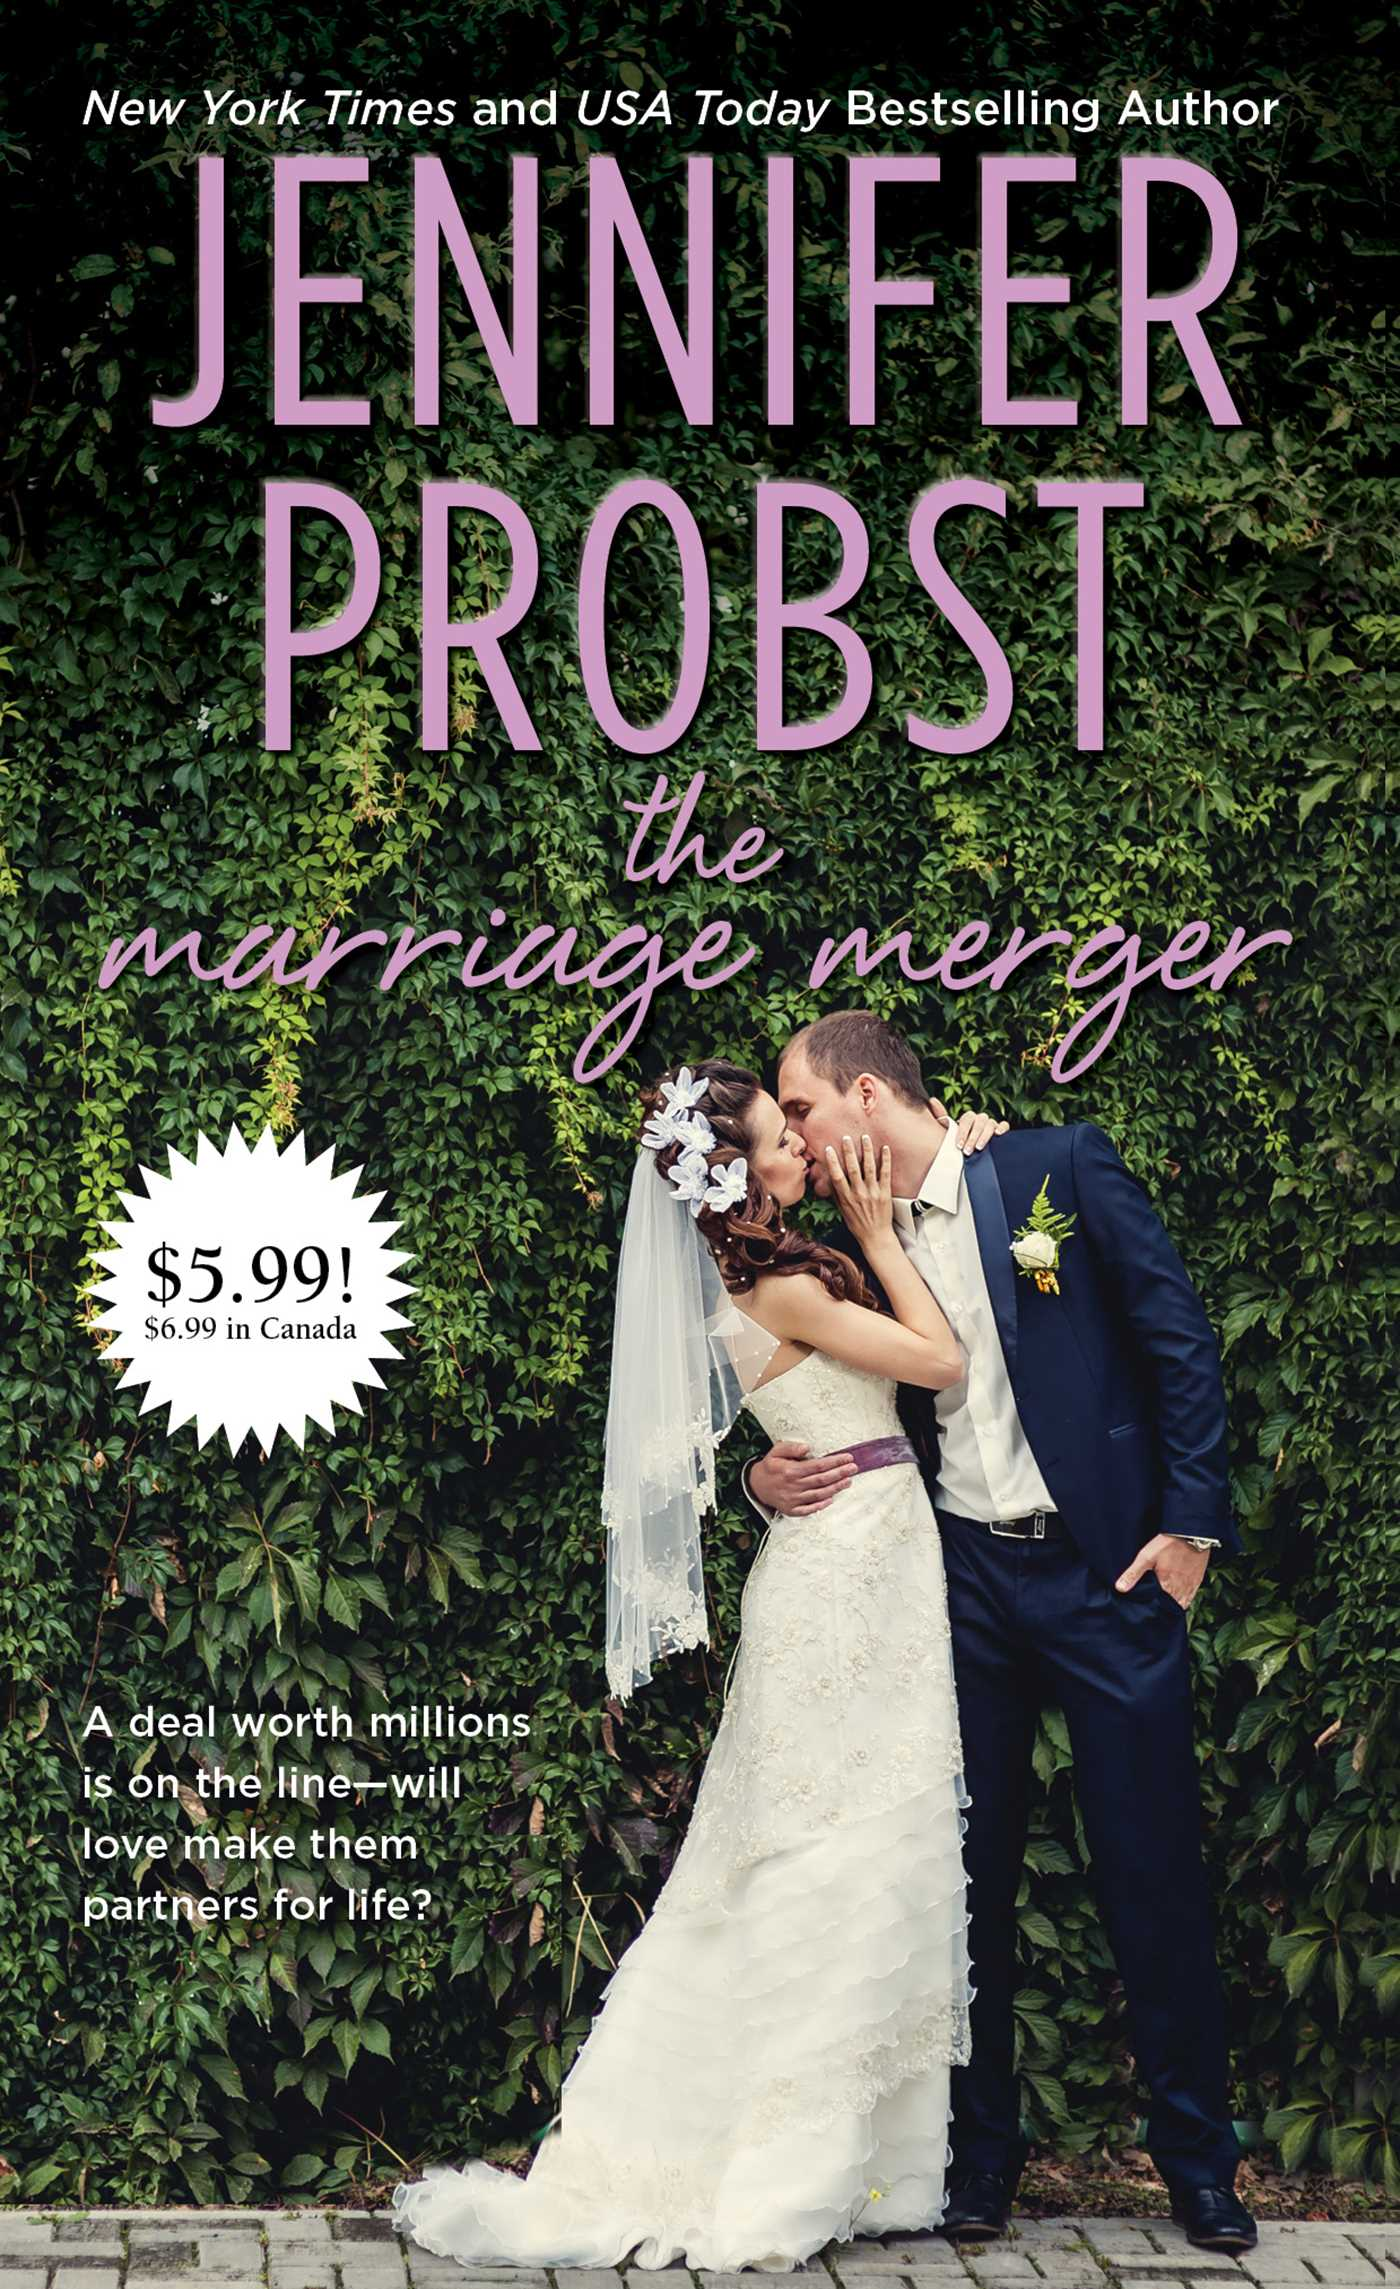 Marriage Merger book cover